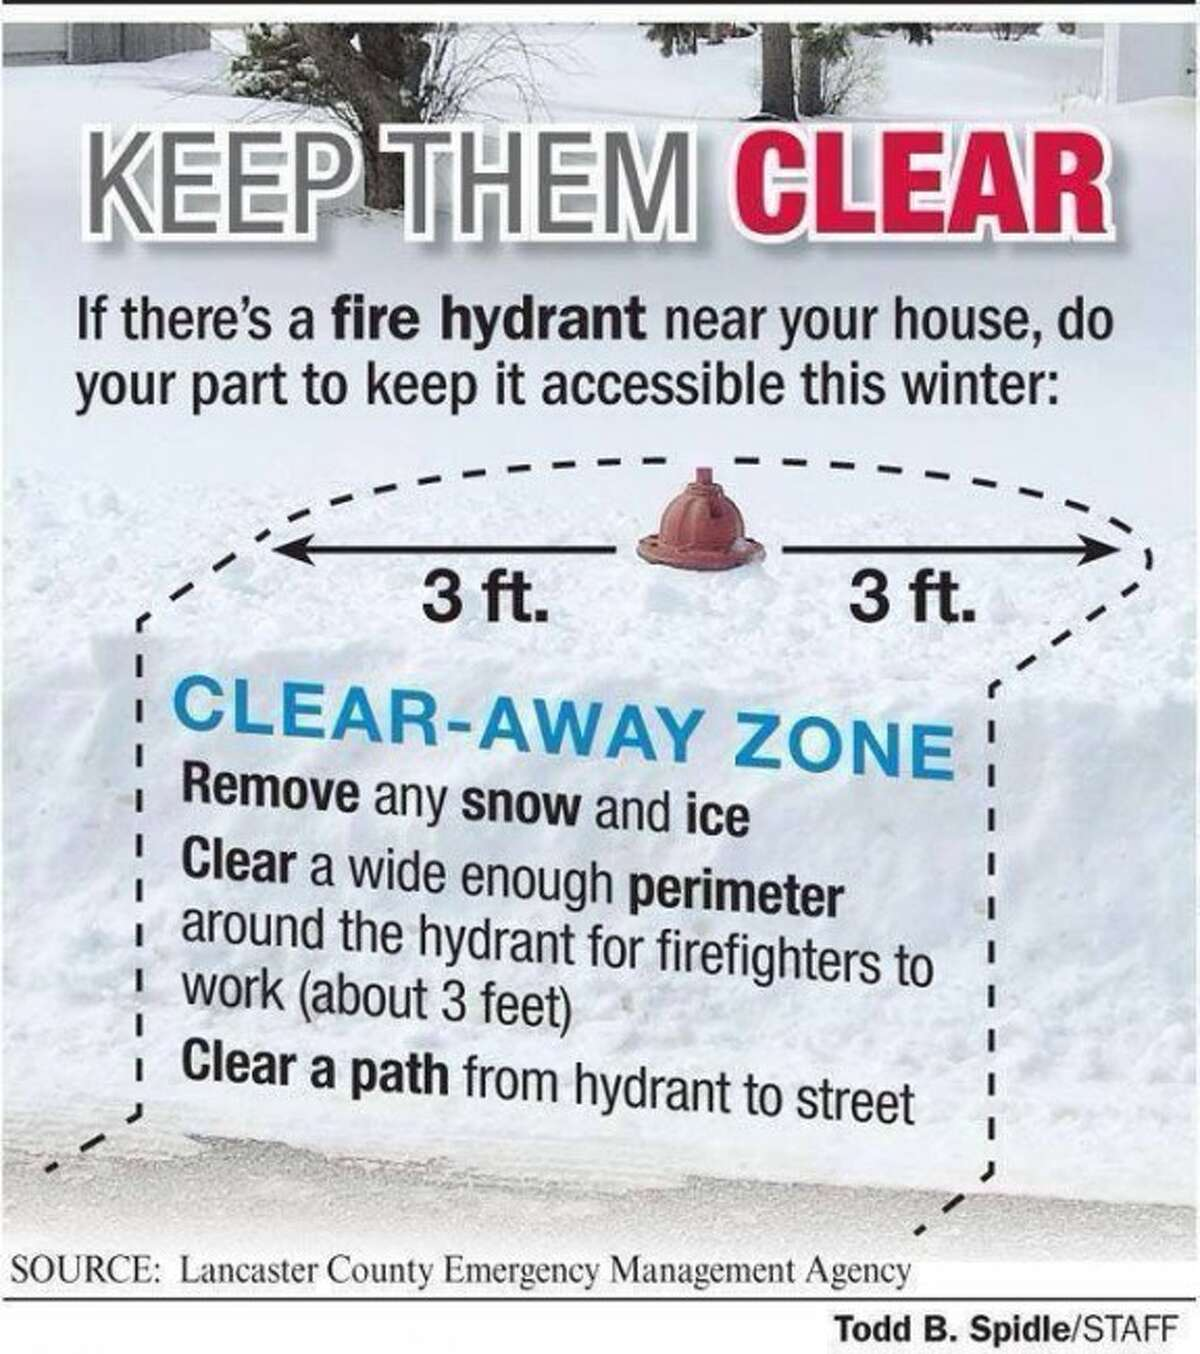 Courtesy of the City of Manistee Fire Department Facebook page.